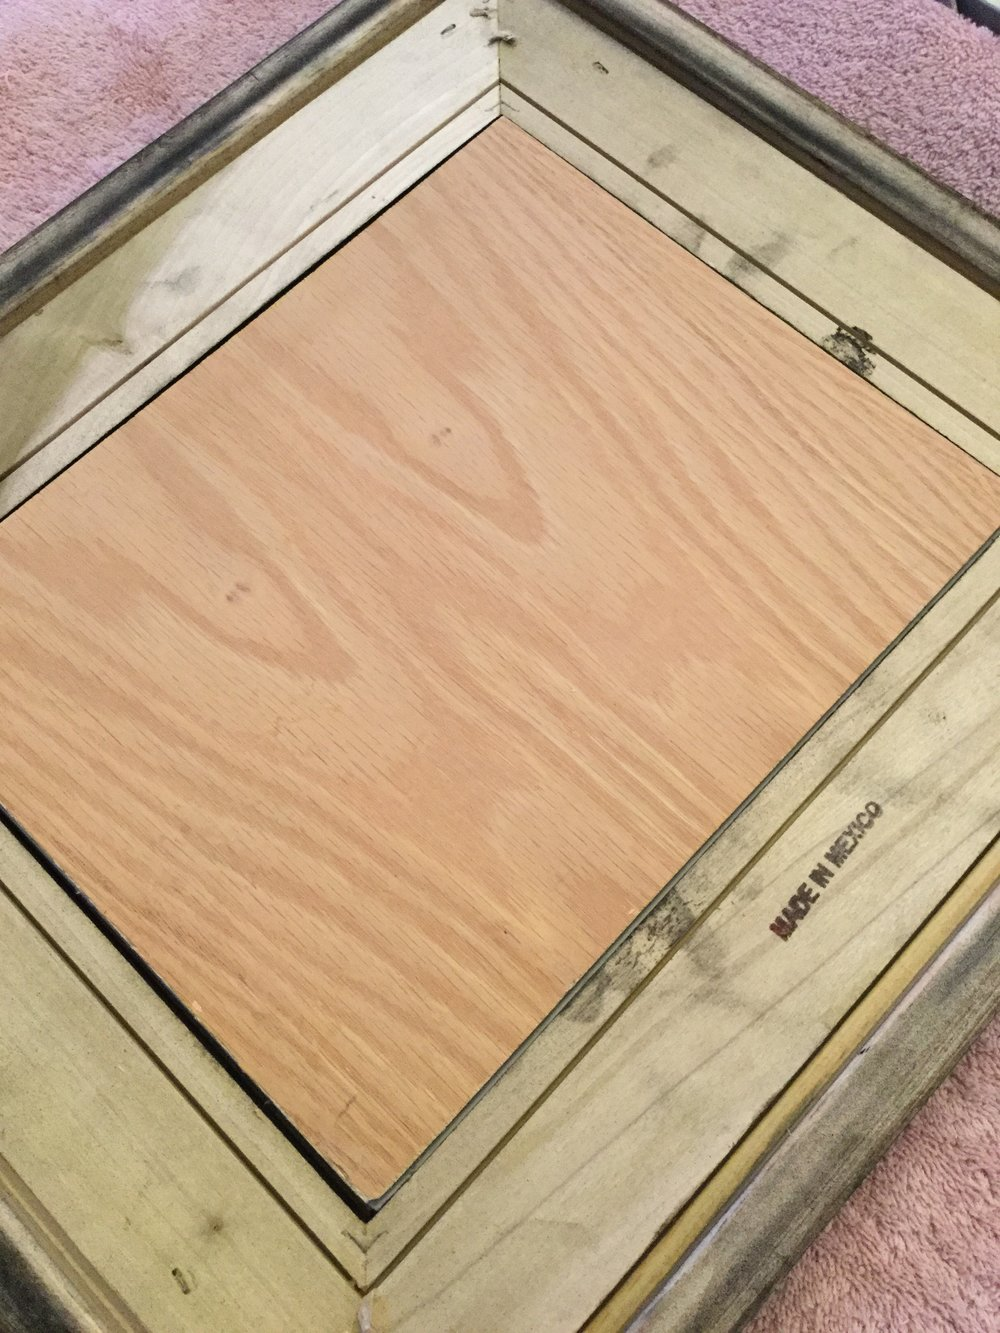 How To Frame A Canvas Panel Kim T Richards